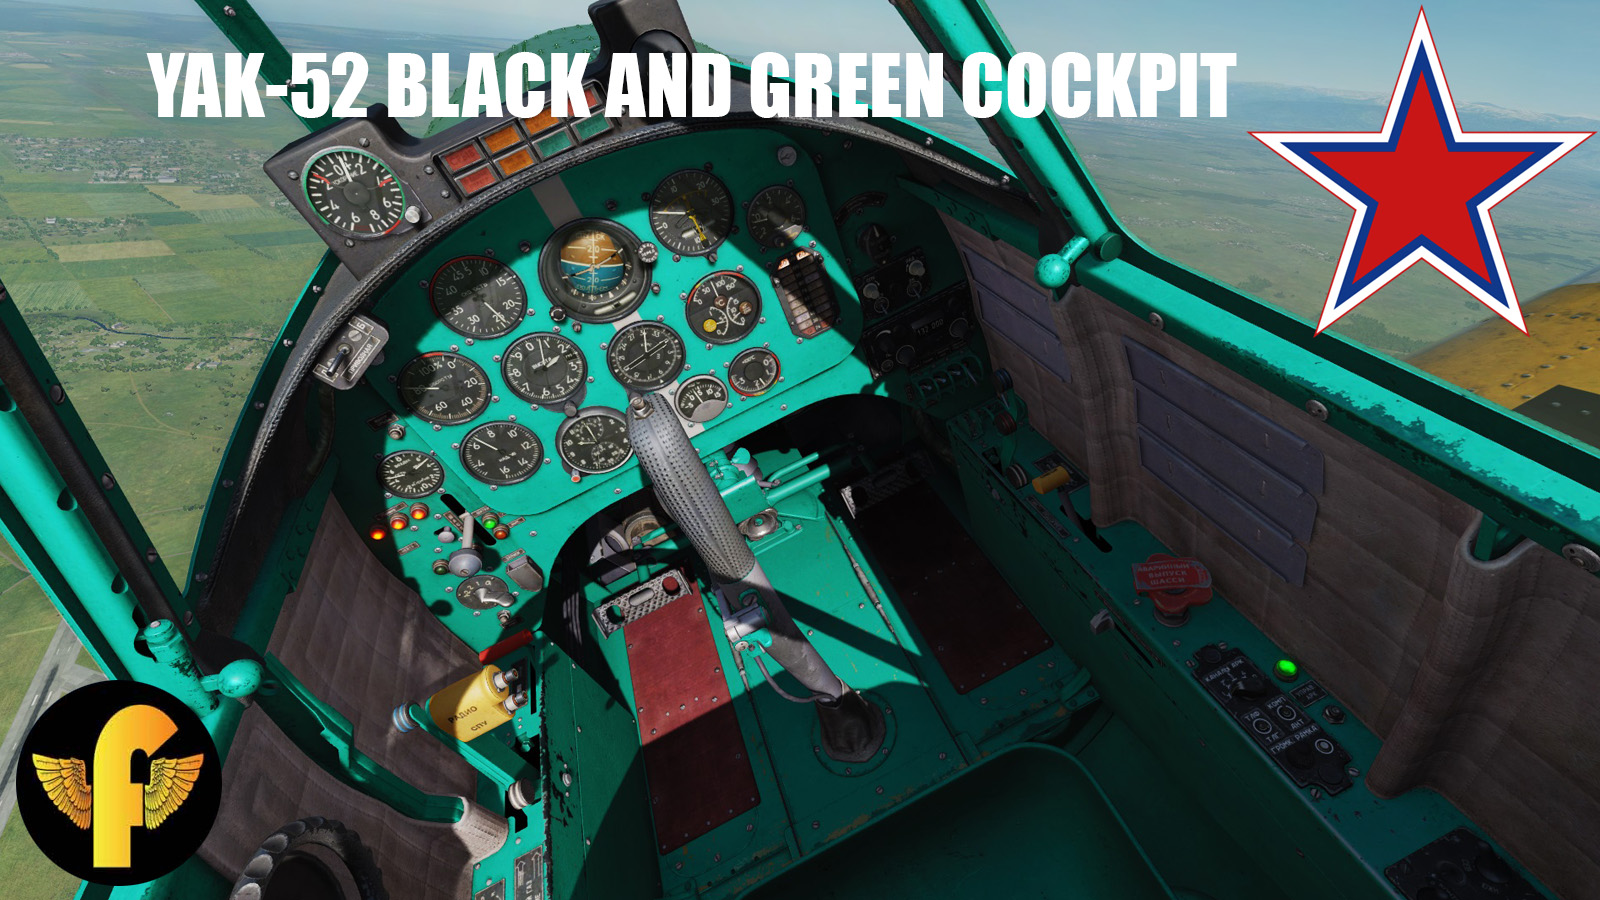 Green and Black cockpit livery for Yak-52